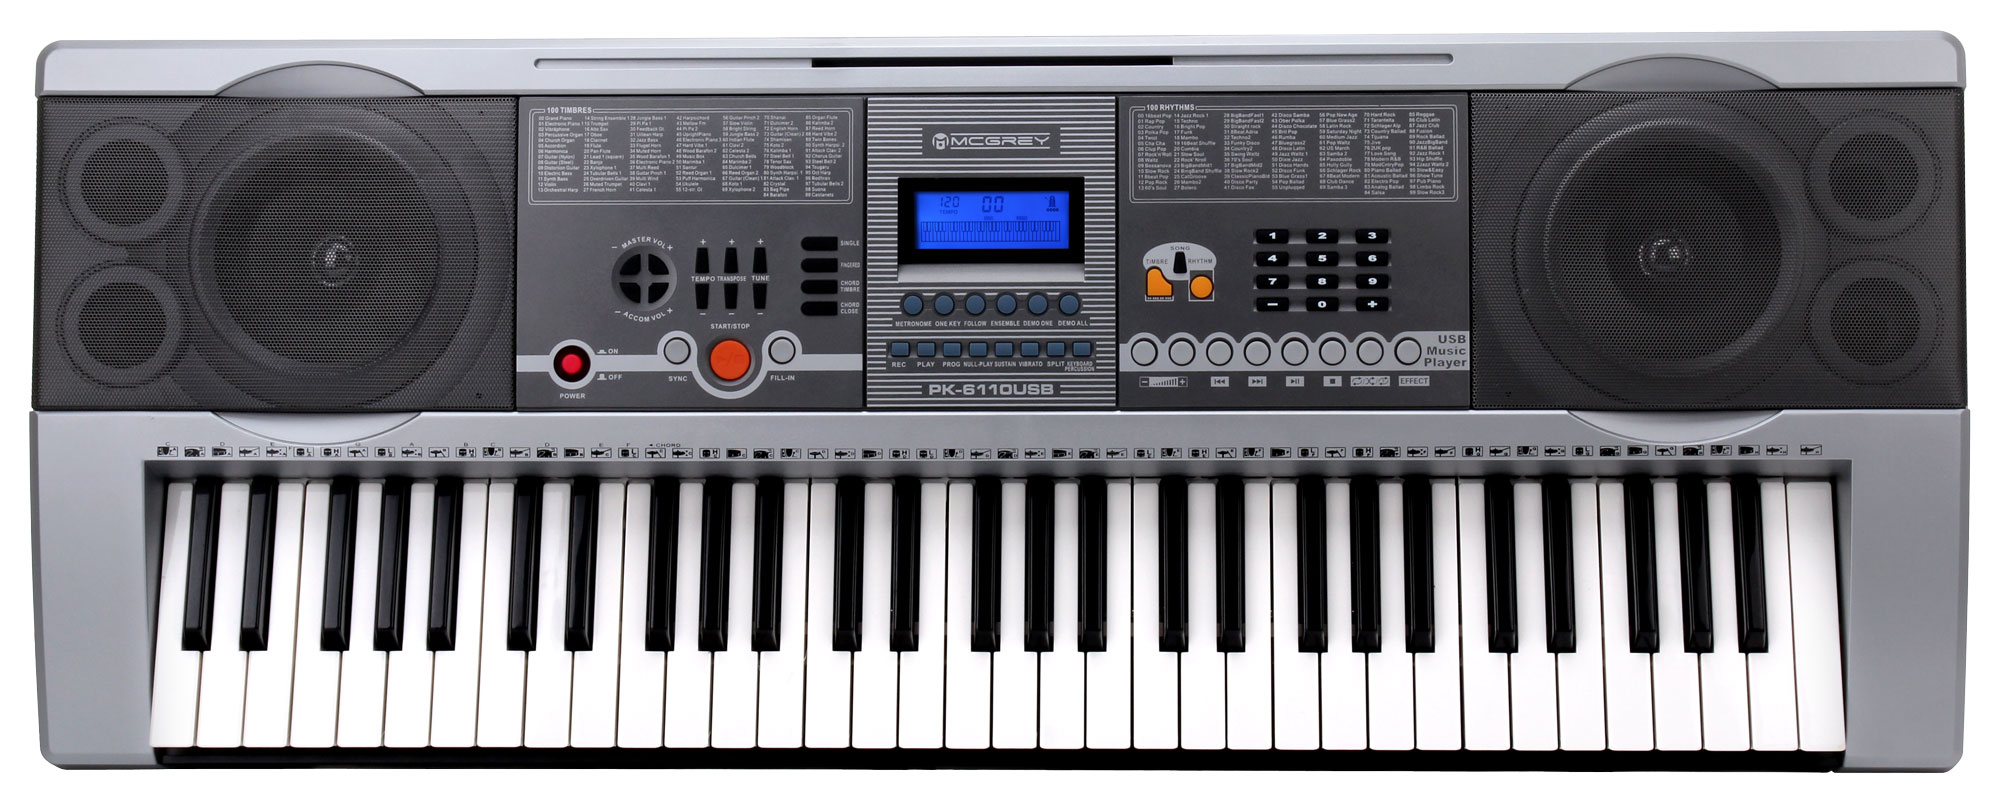 McGrey PK-6110USB Keyboard with 61 Key USB / MP3 Player and Note Stand